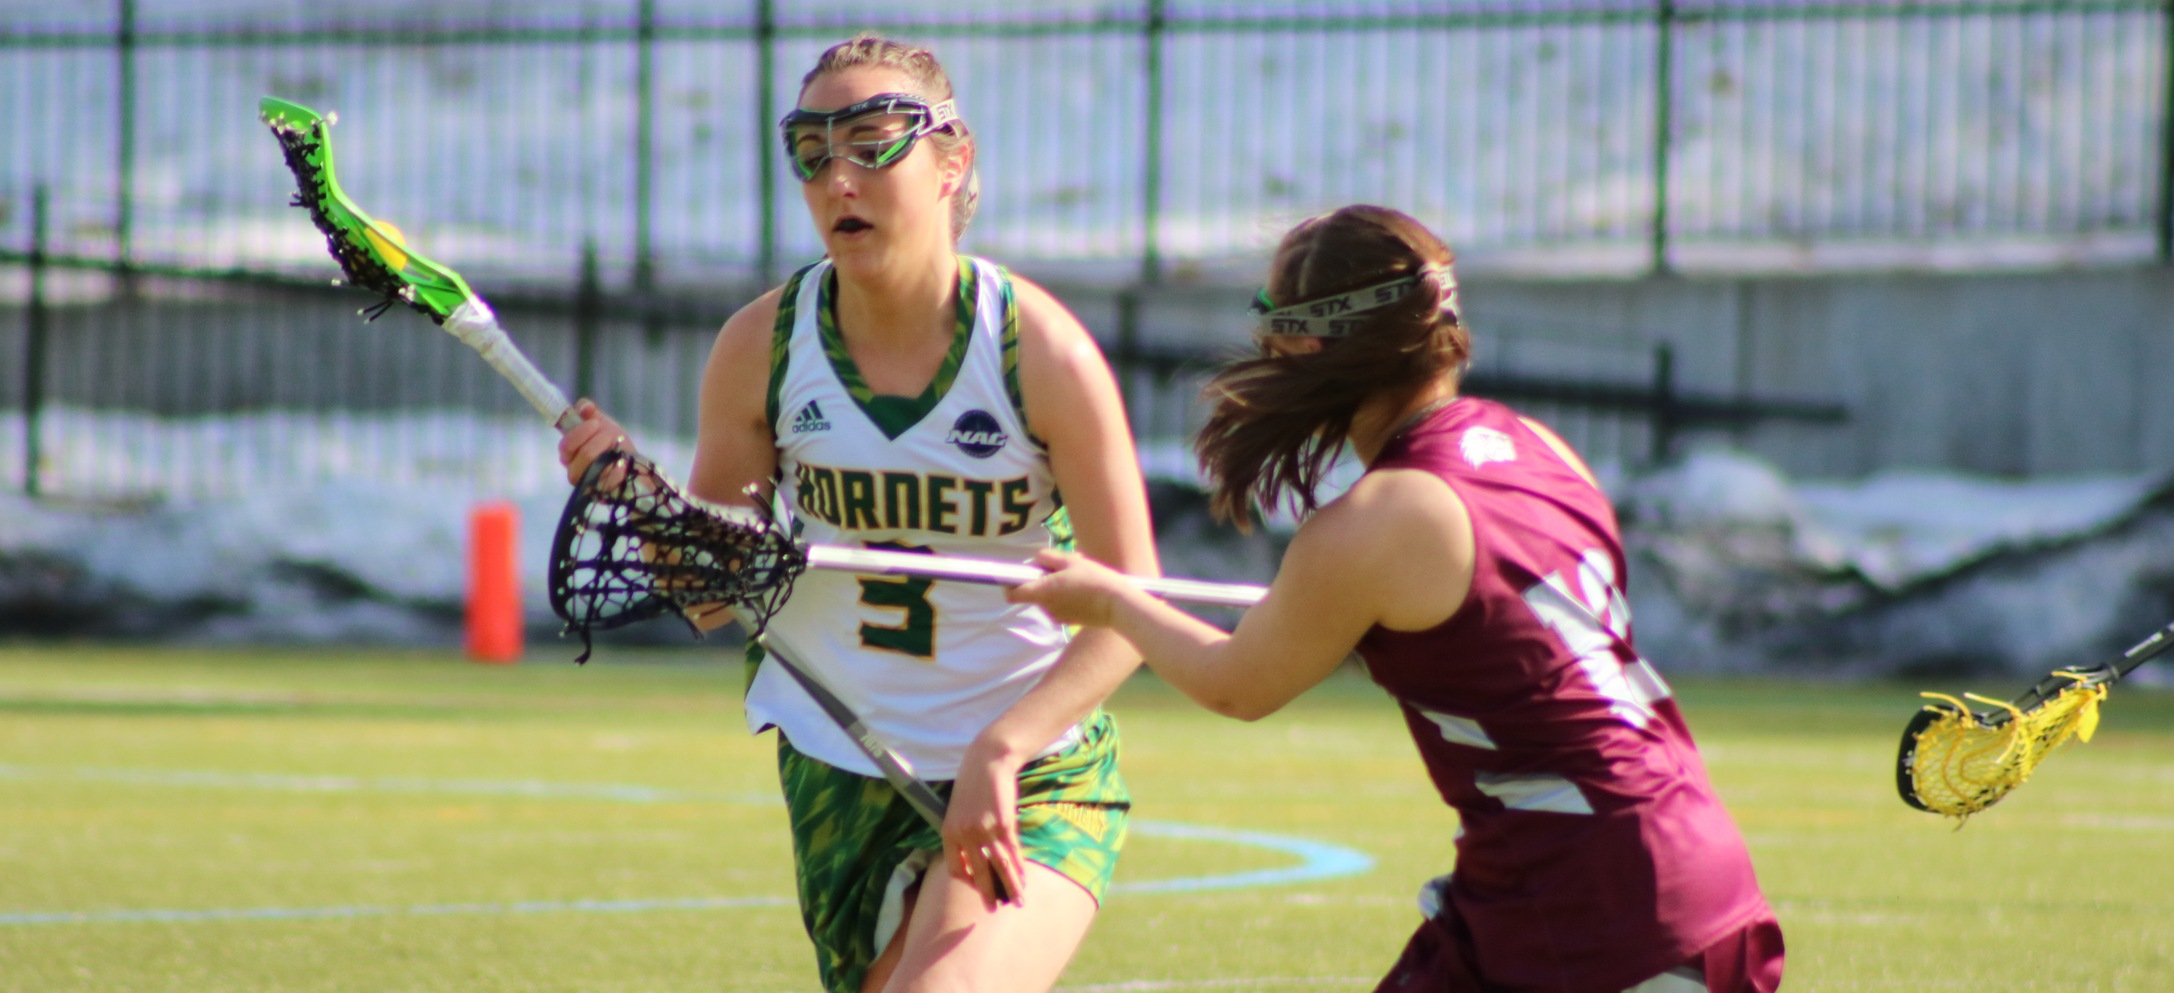 Hornet women's lacrosse can't keep up with UMaine-Farmington